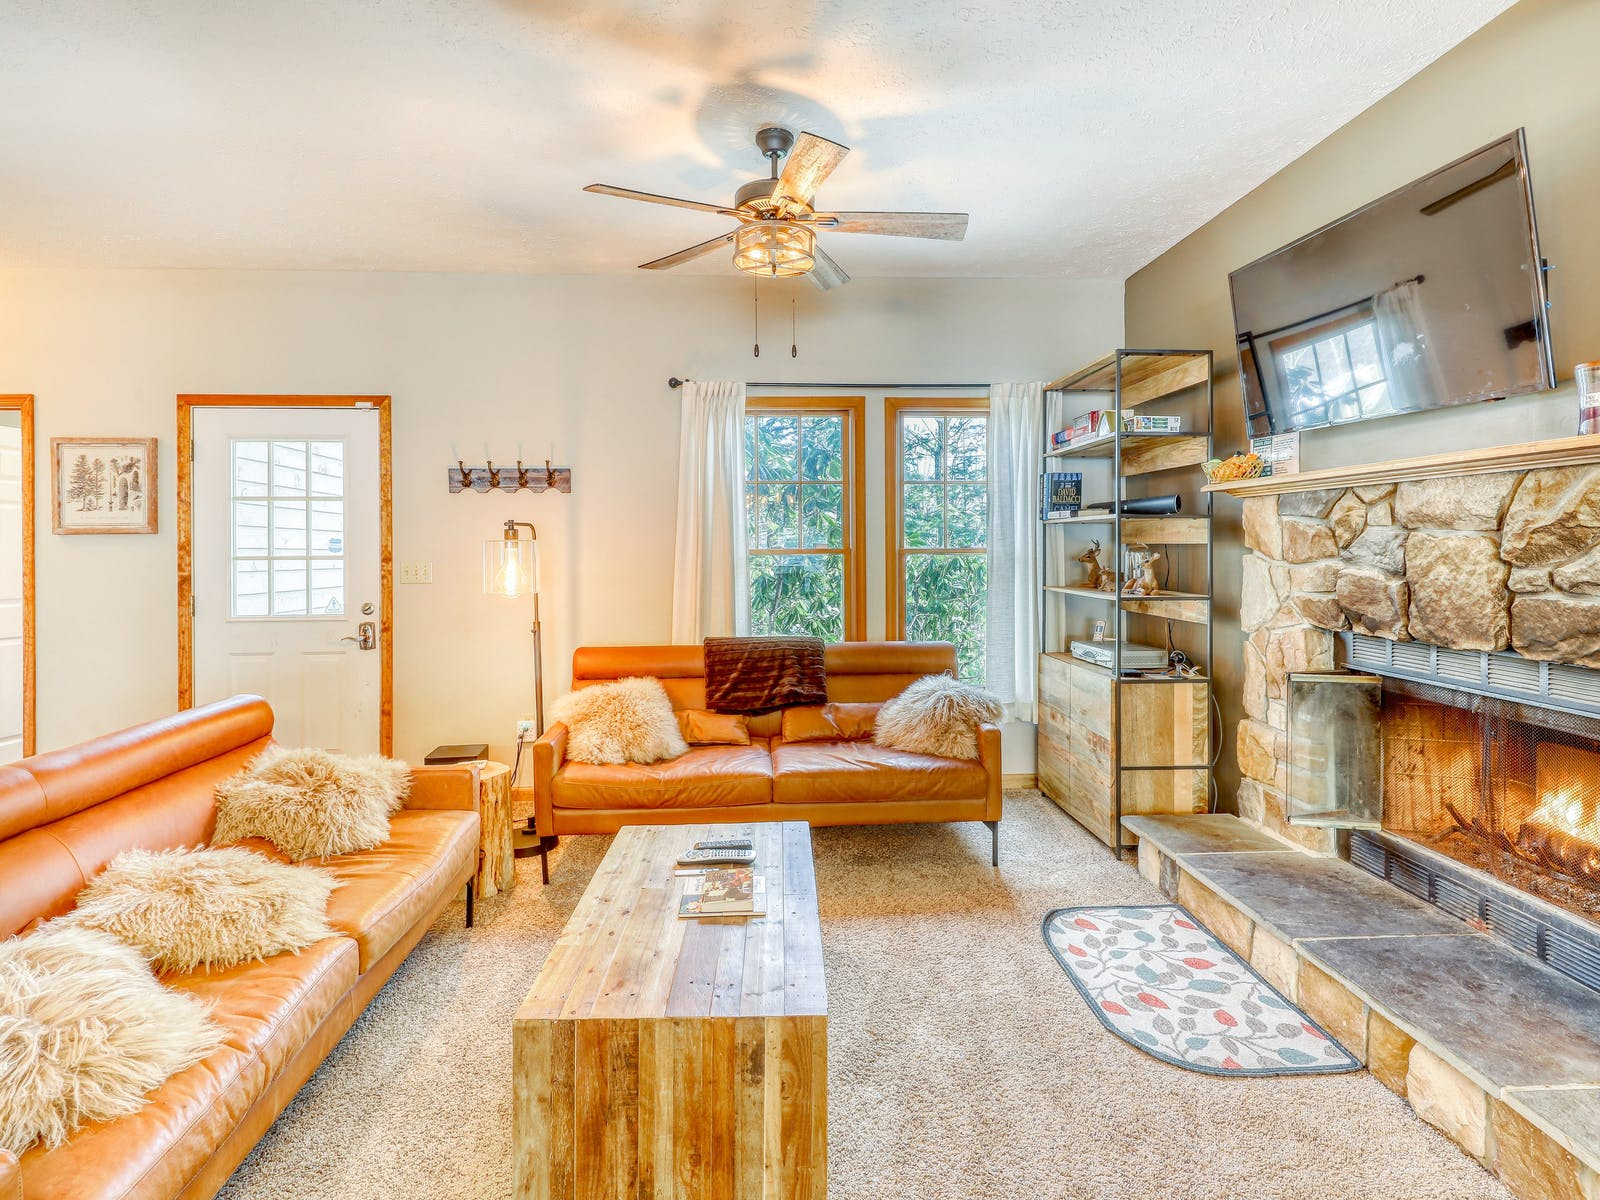 cozy living room with leather couches, a large stone fireplace and fluffy white throw pillows in tannersville, pa vacation home